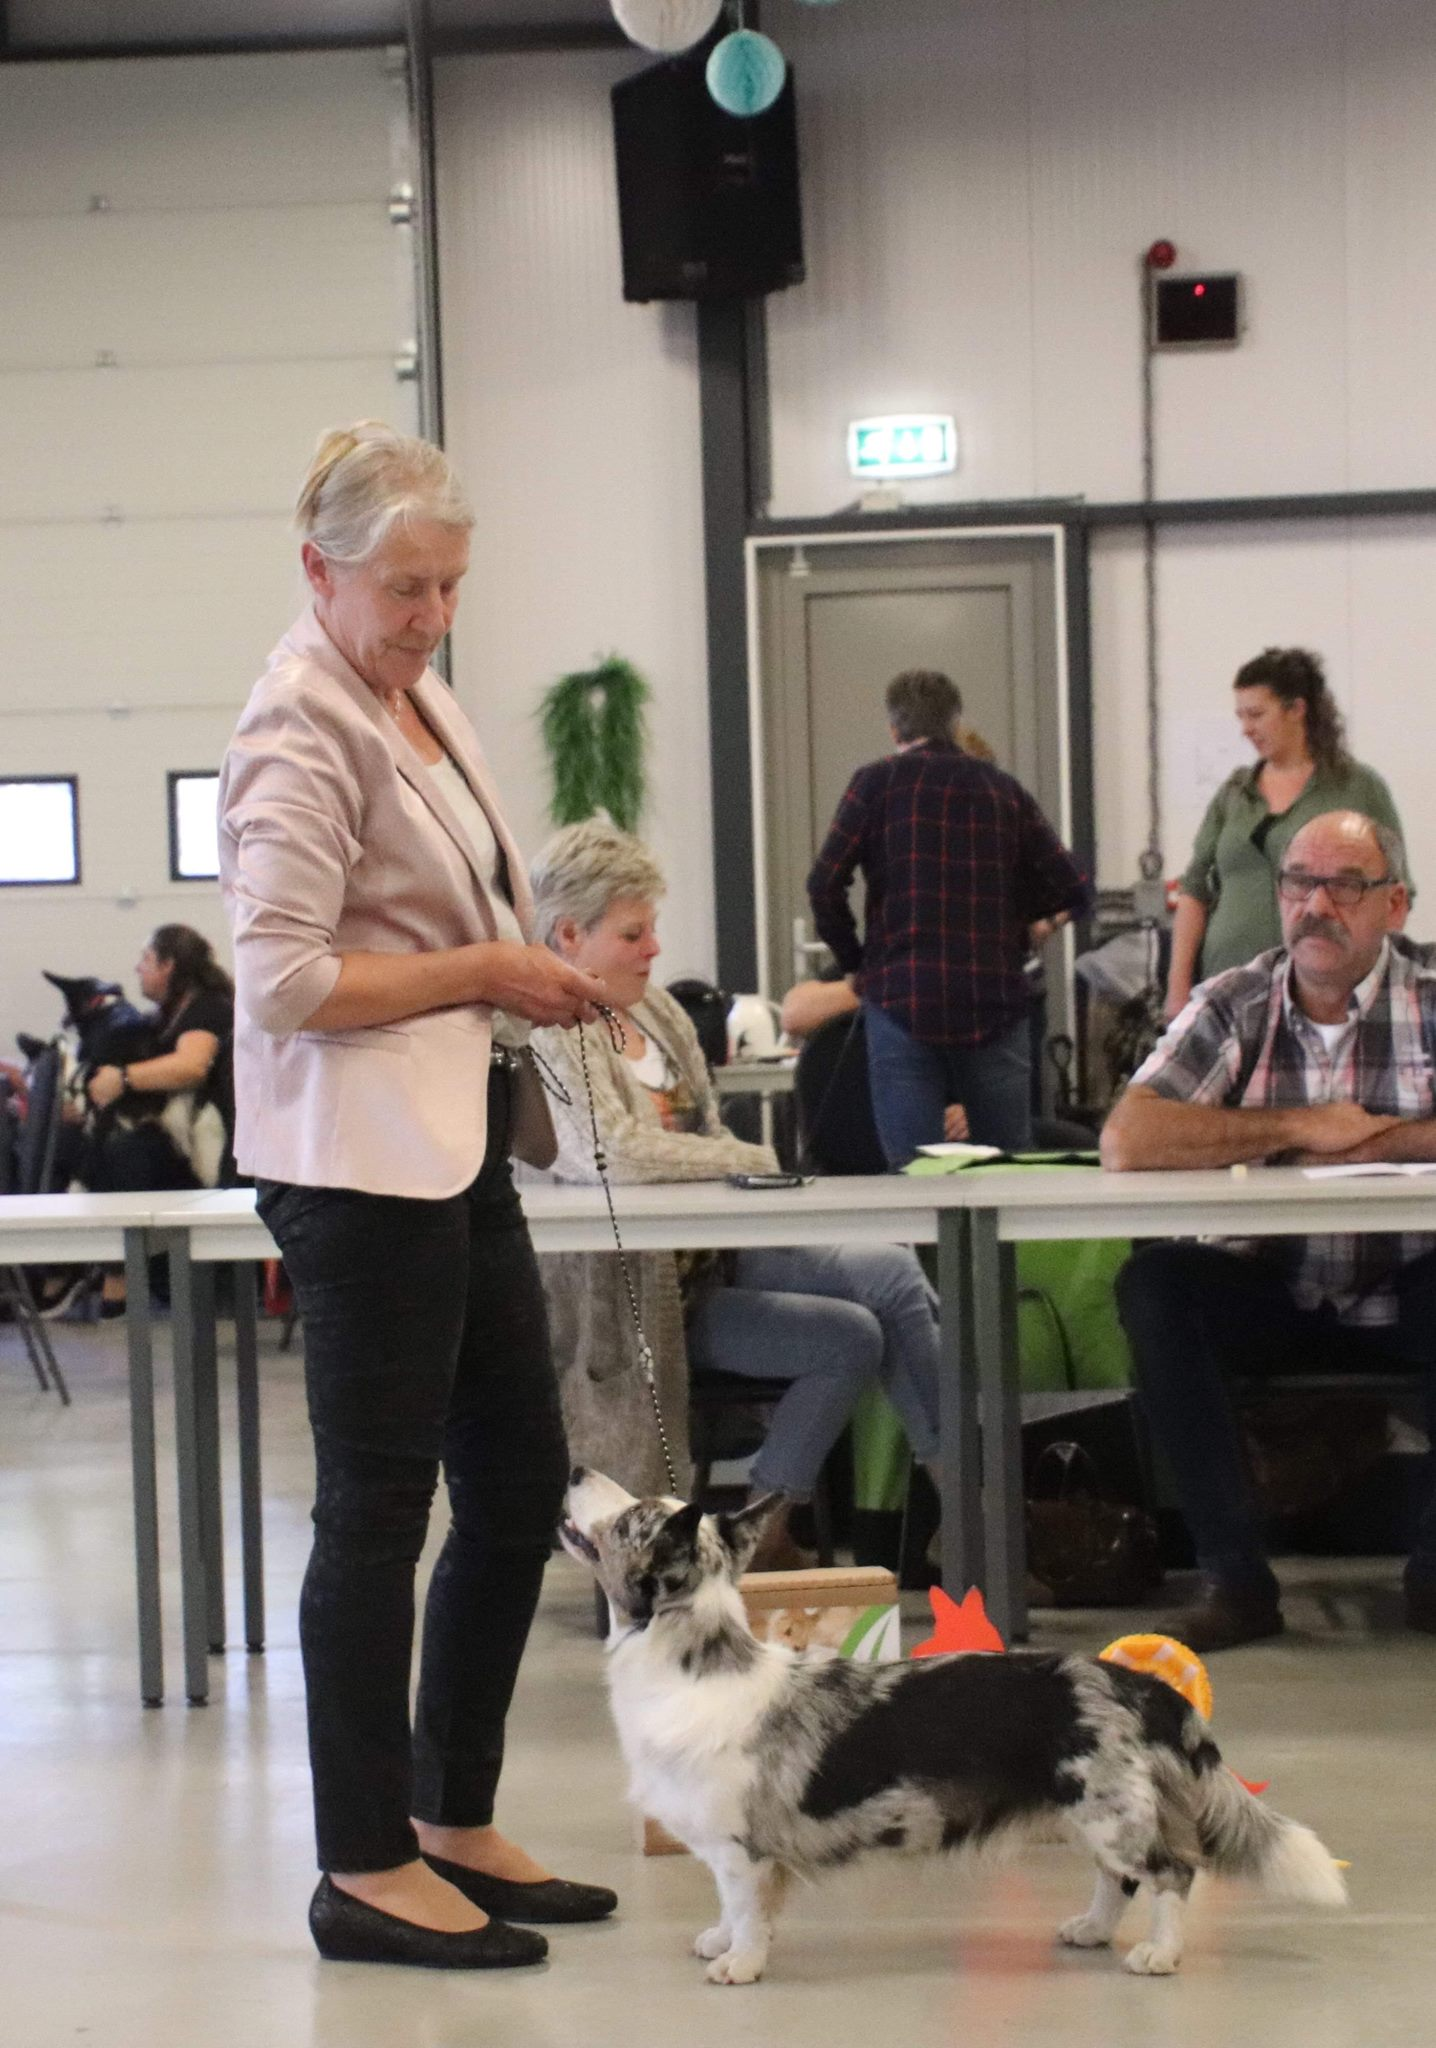 Welshclan's Maggy May with her owner Harma Muller, 1 ex in Open class